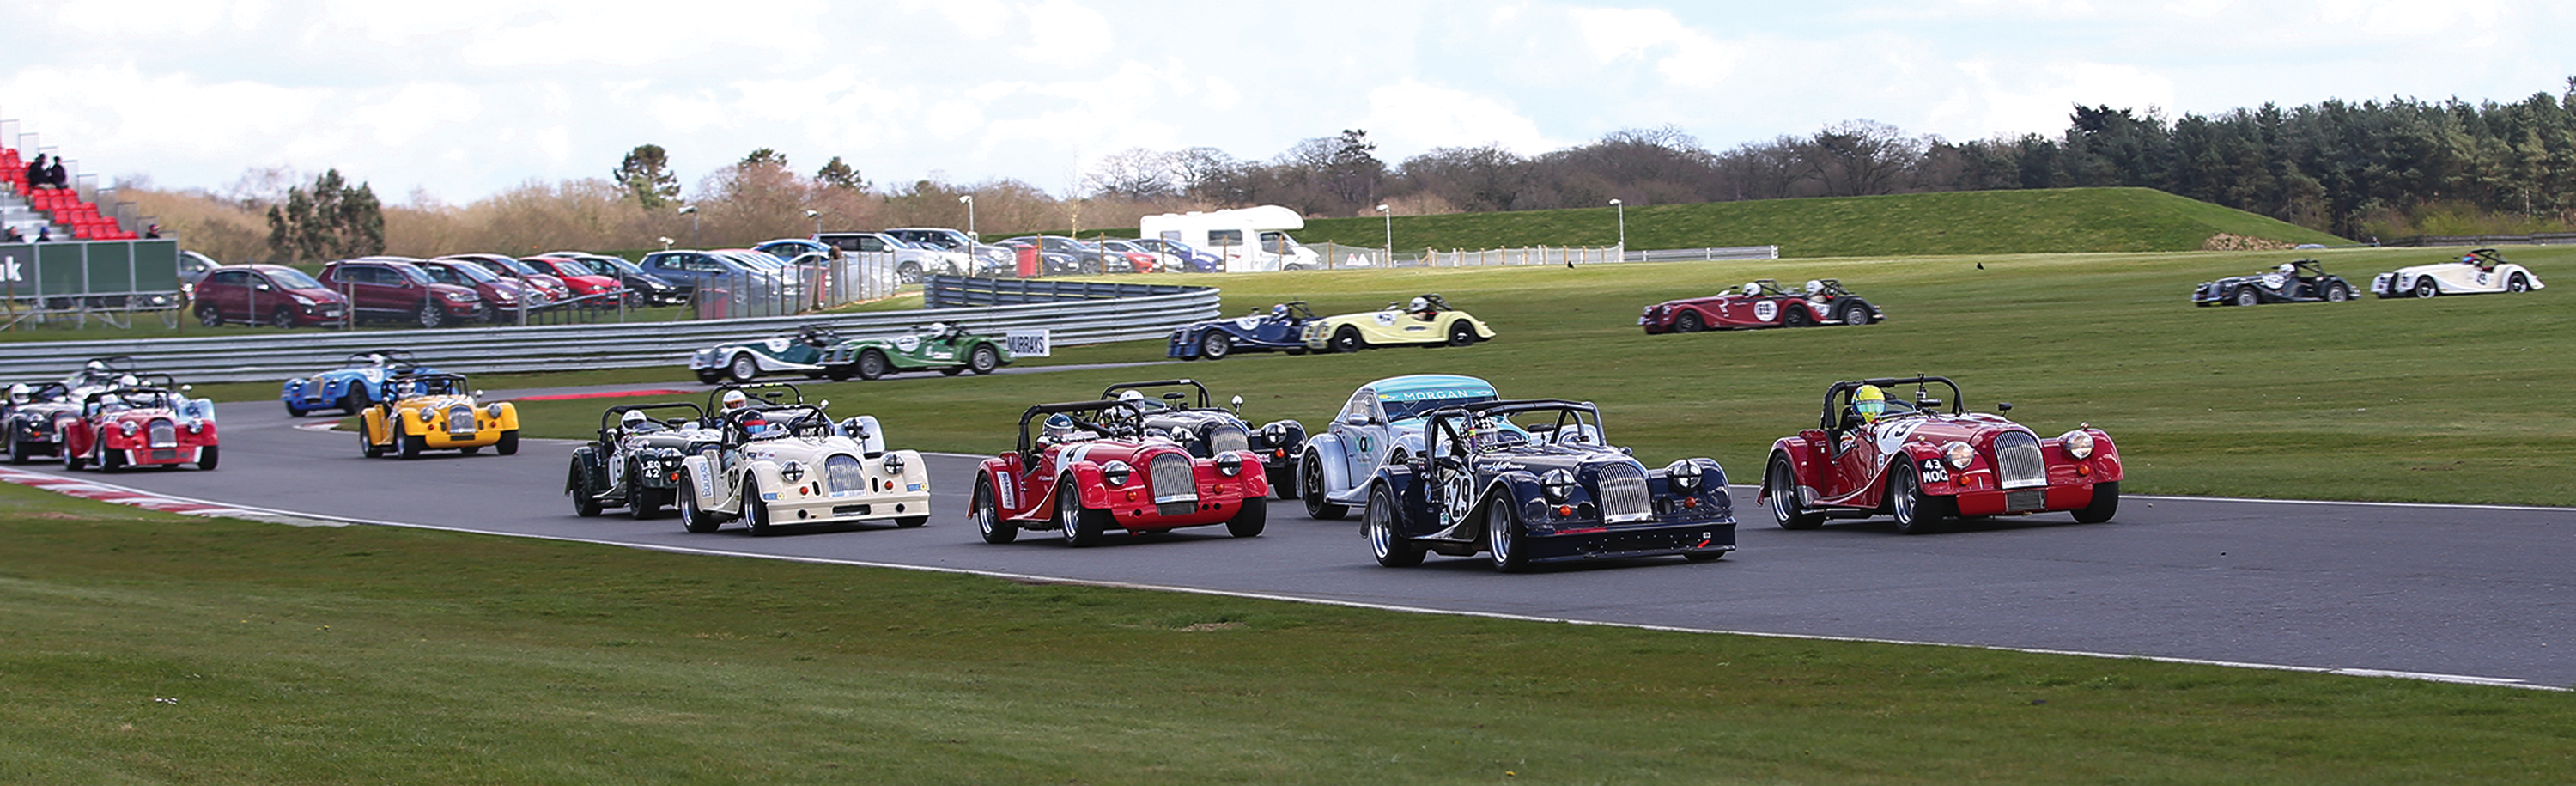 Morgan Challenge rolling start at Snetterton